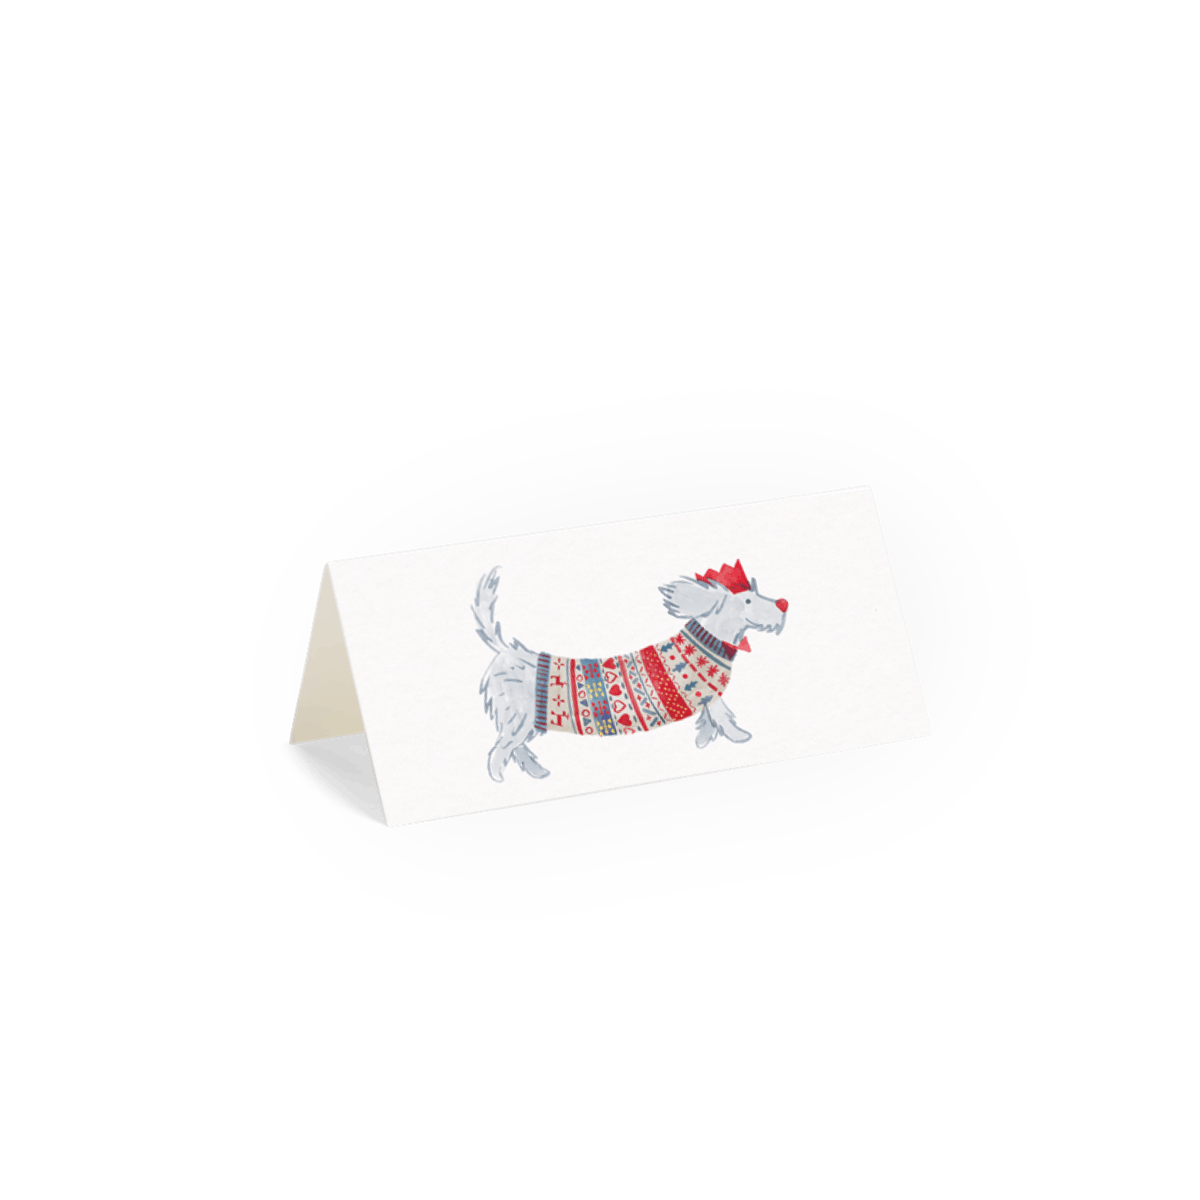 Https%3a%2f%2fwww.papier.com%2fproduct image%2f12785%2f15%2fchristmas dog 3215 back 1477481388.png?ixlib=rb 1.1